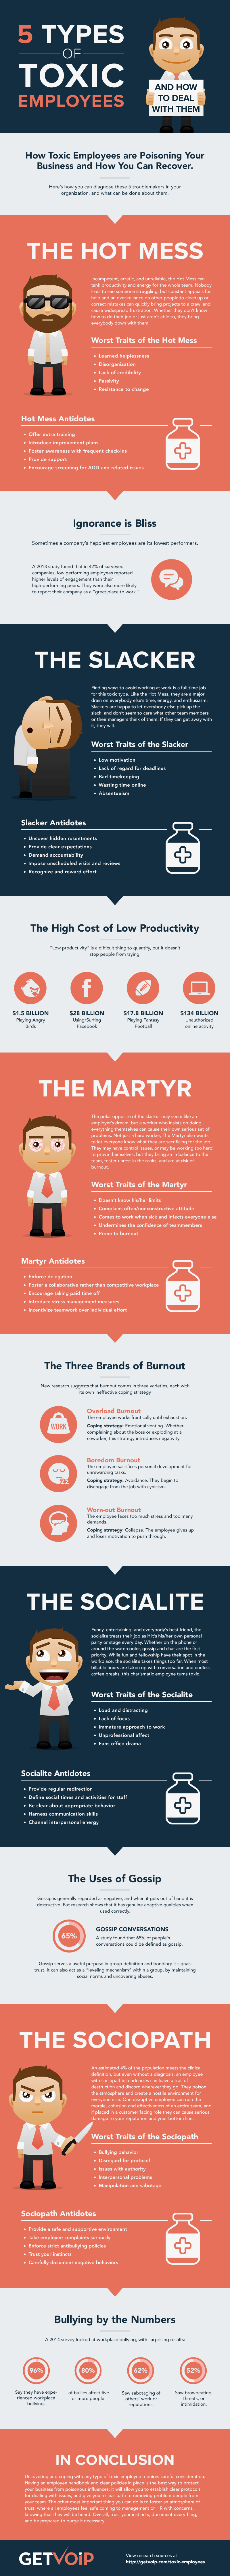 toxic-employees-infographic